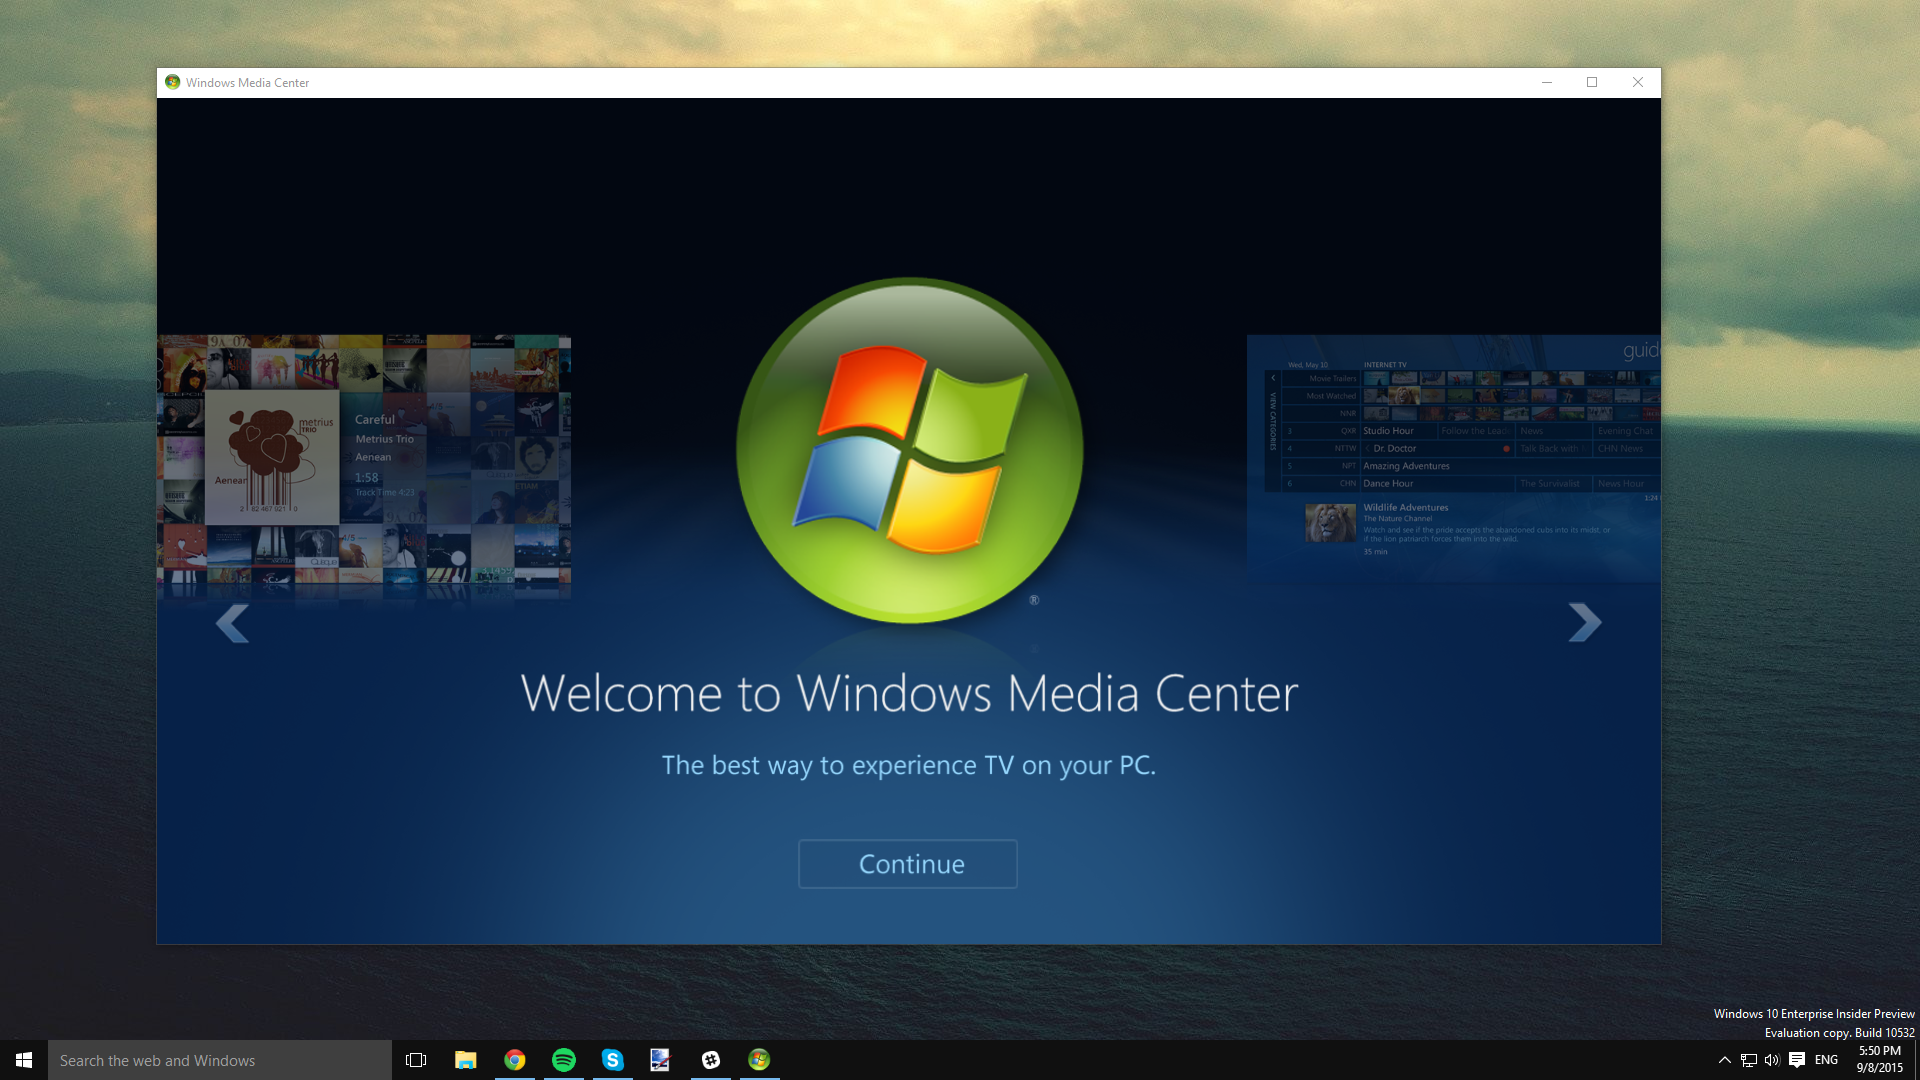 How to install Windows Media Center in Windows 10